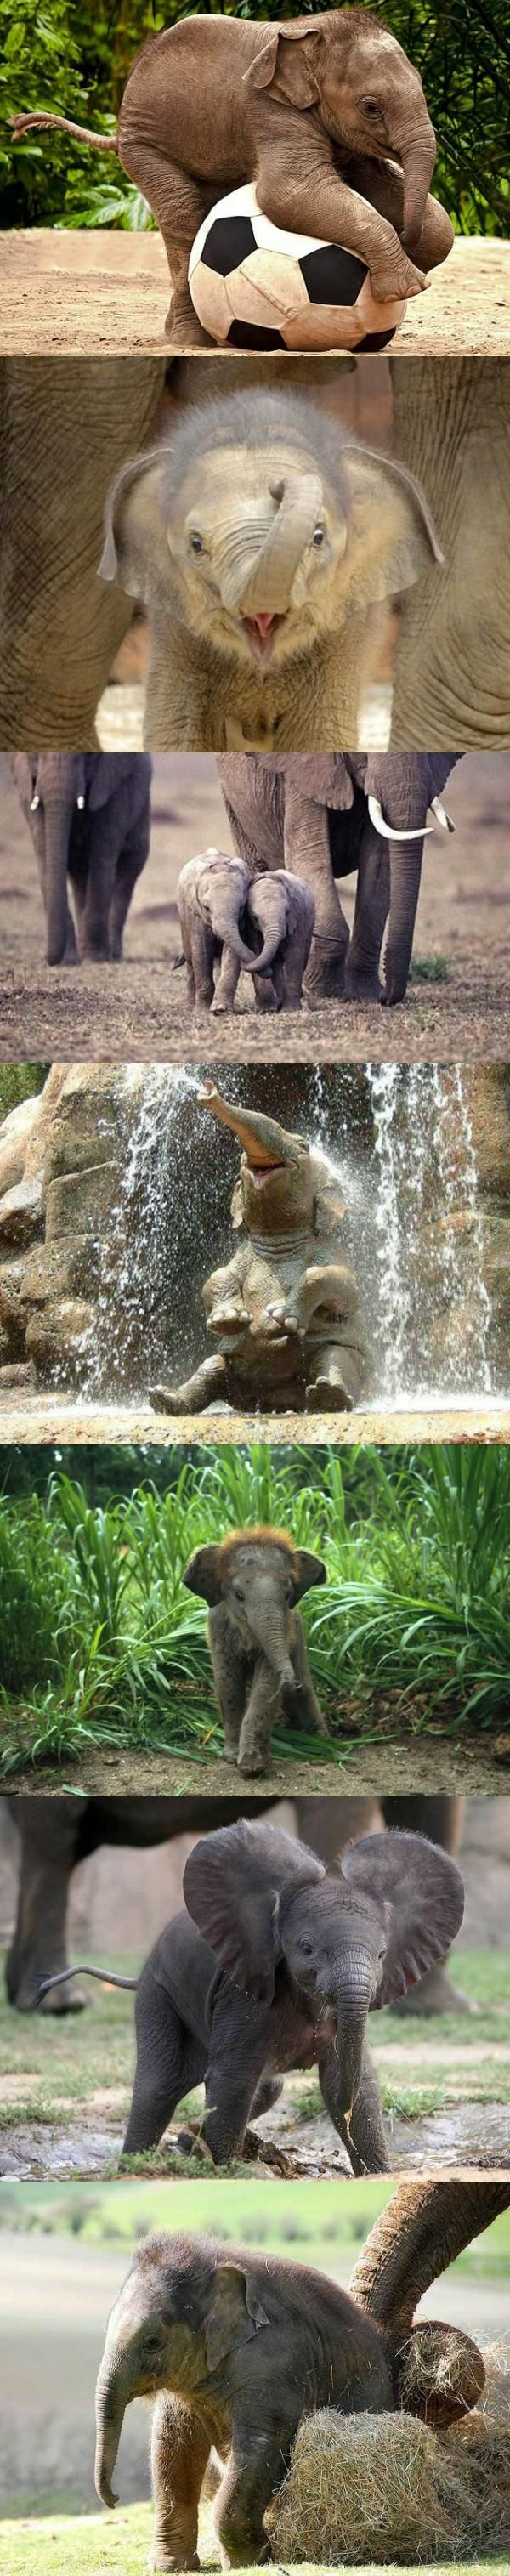 I have always thought baby elephants were cute this is just over the top!